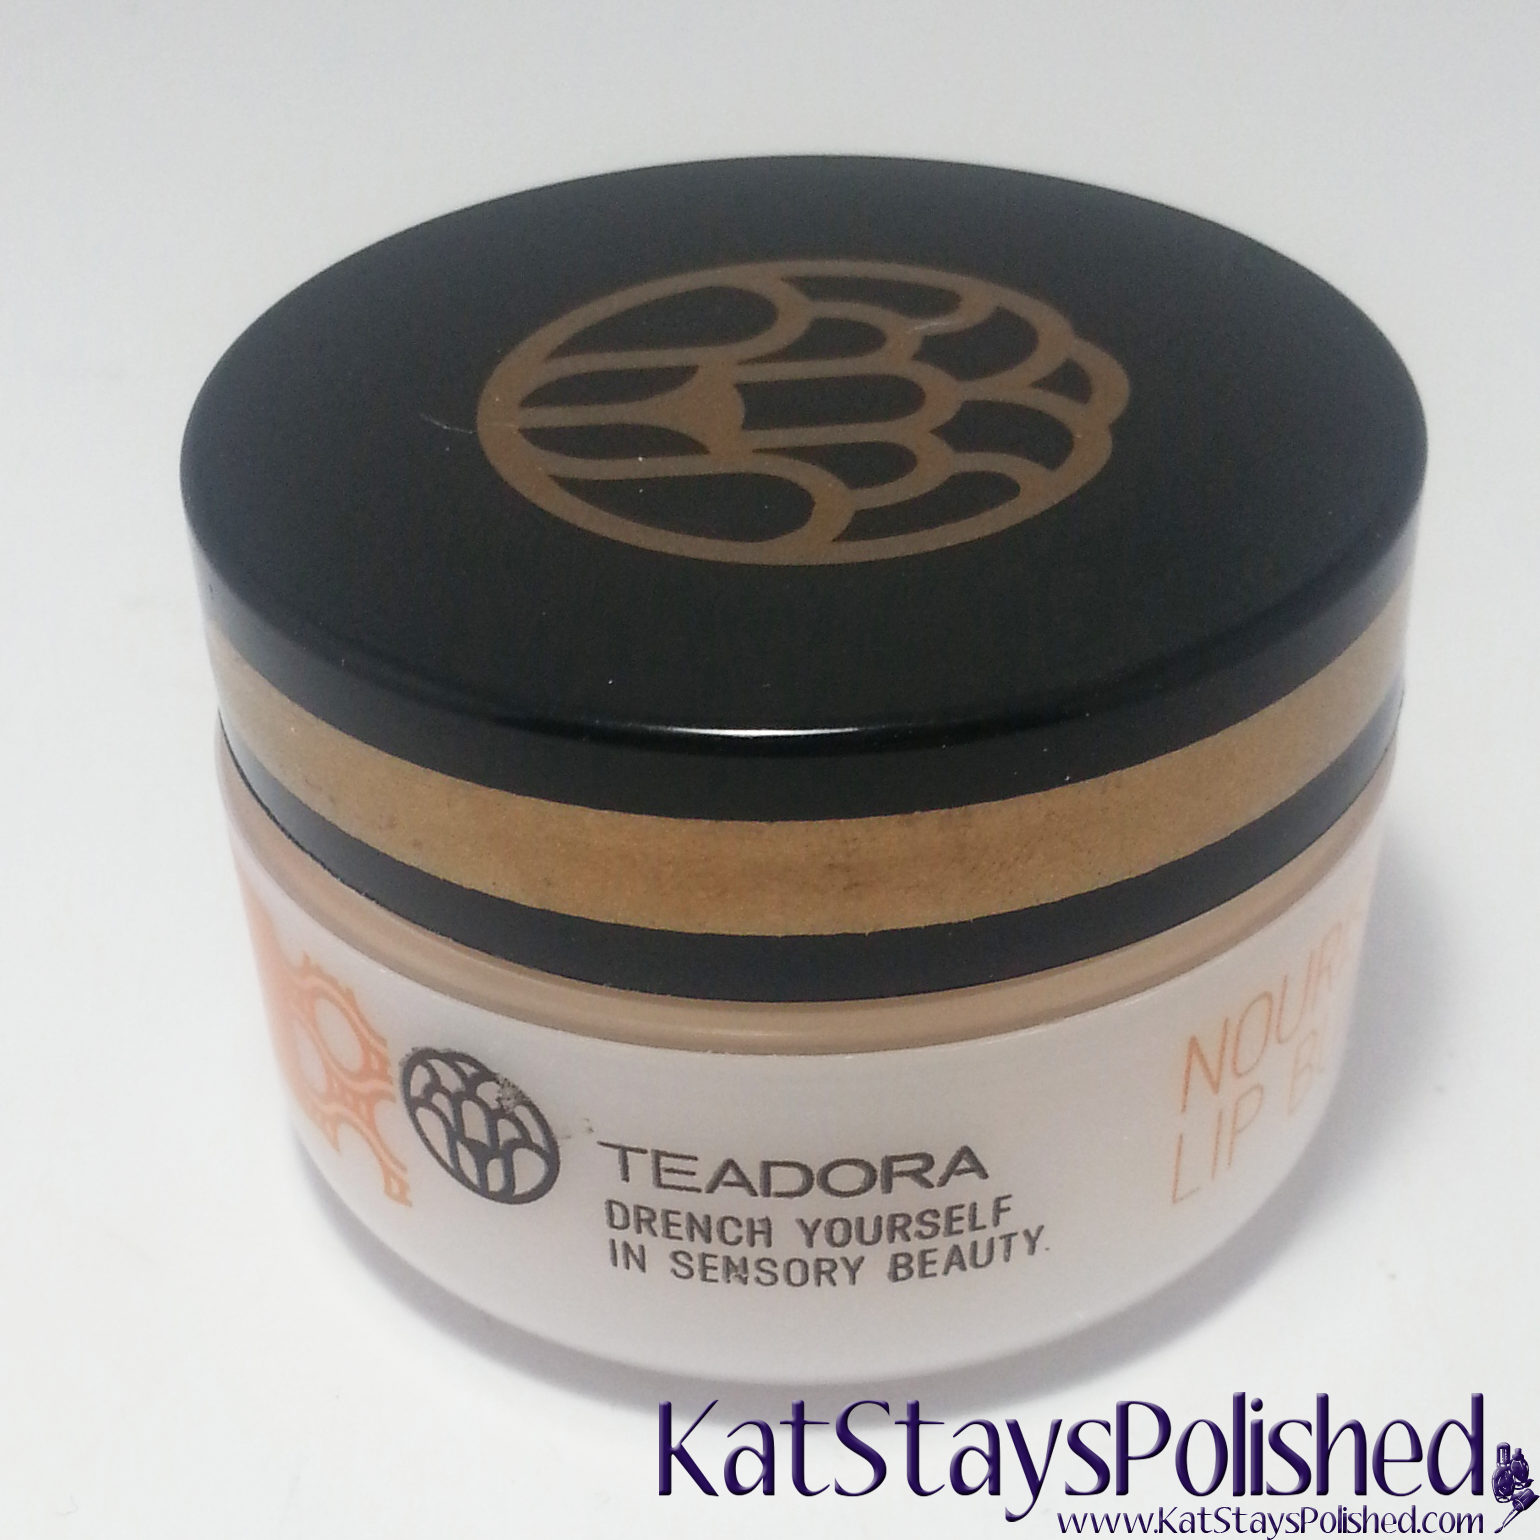 Teadora Nourishing Lip Butter - Rainforest at Dawn | Kat Stays Polished